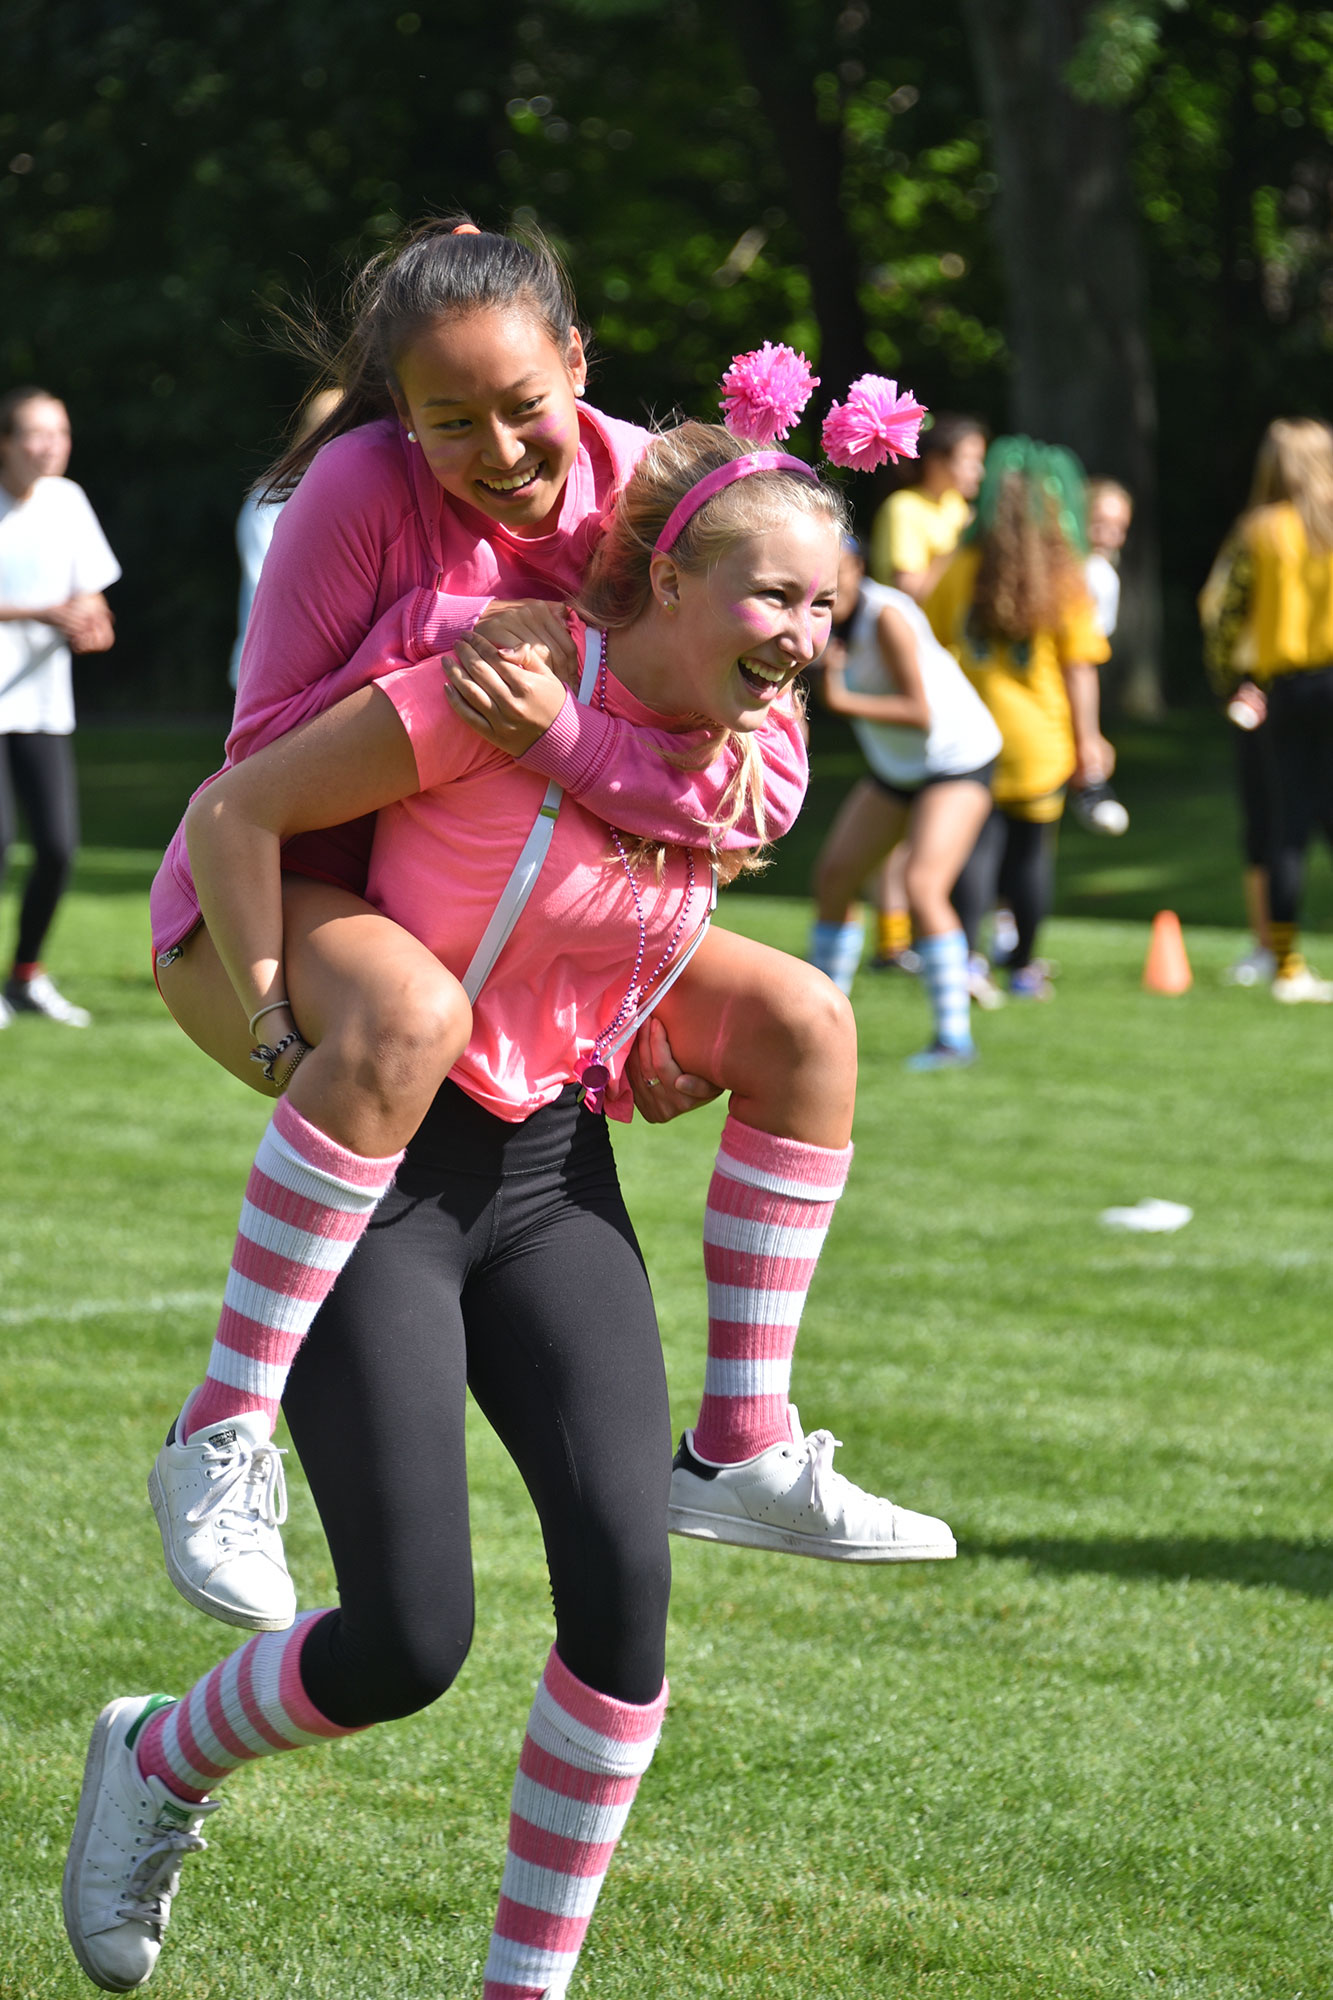 One student piggybacking another for a race on a field. Both are wearing pink and white for Agnes Hansen House.